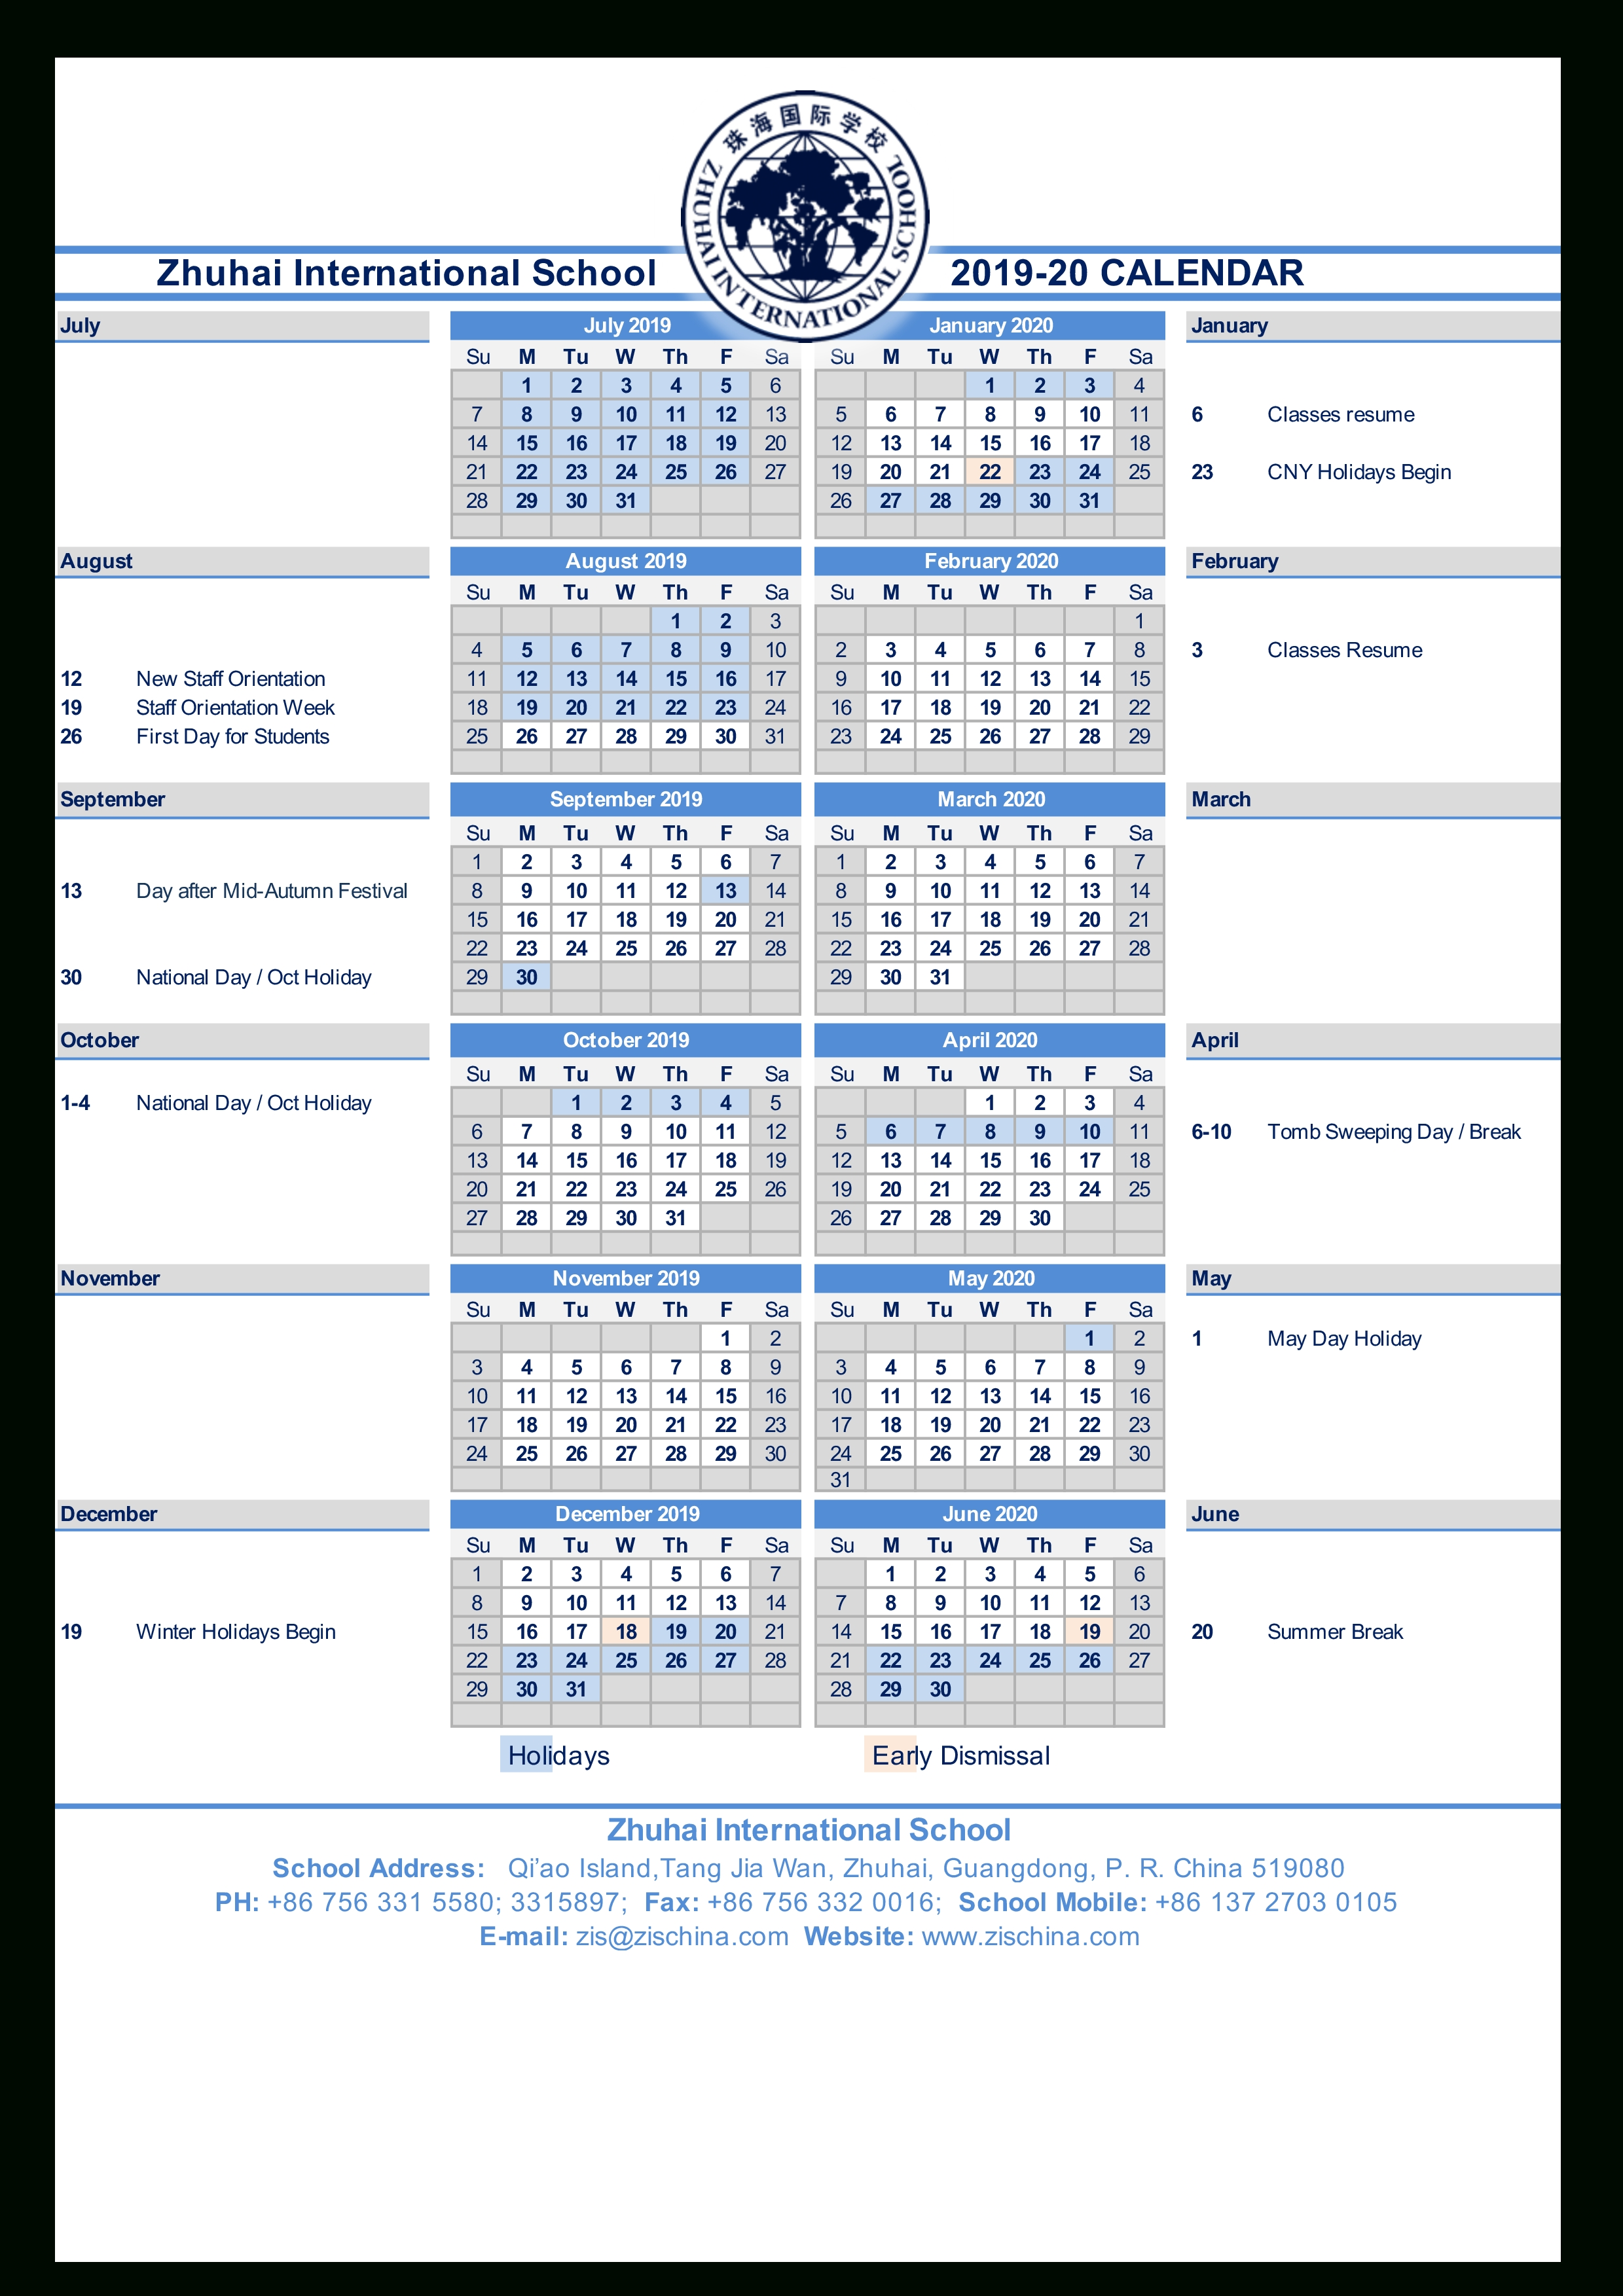 Calendars | Zhuhai International School Zis Calendar 2019